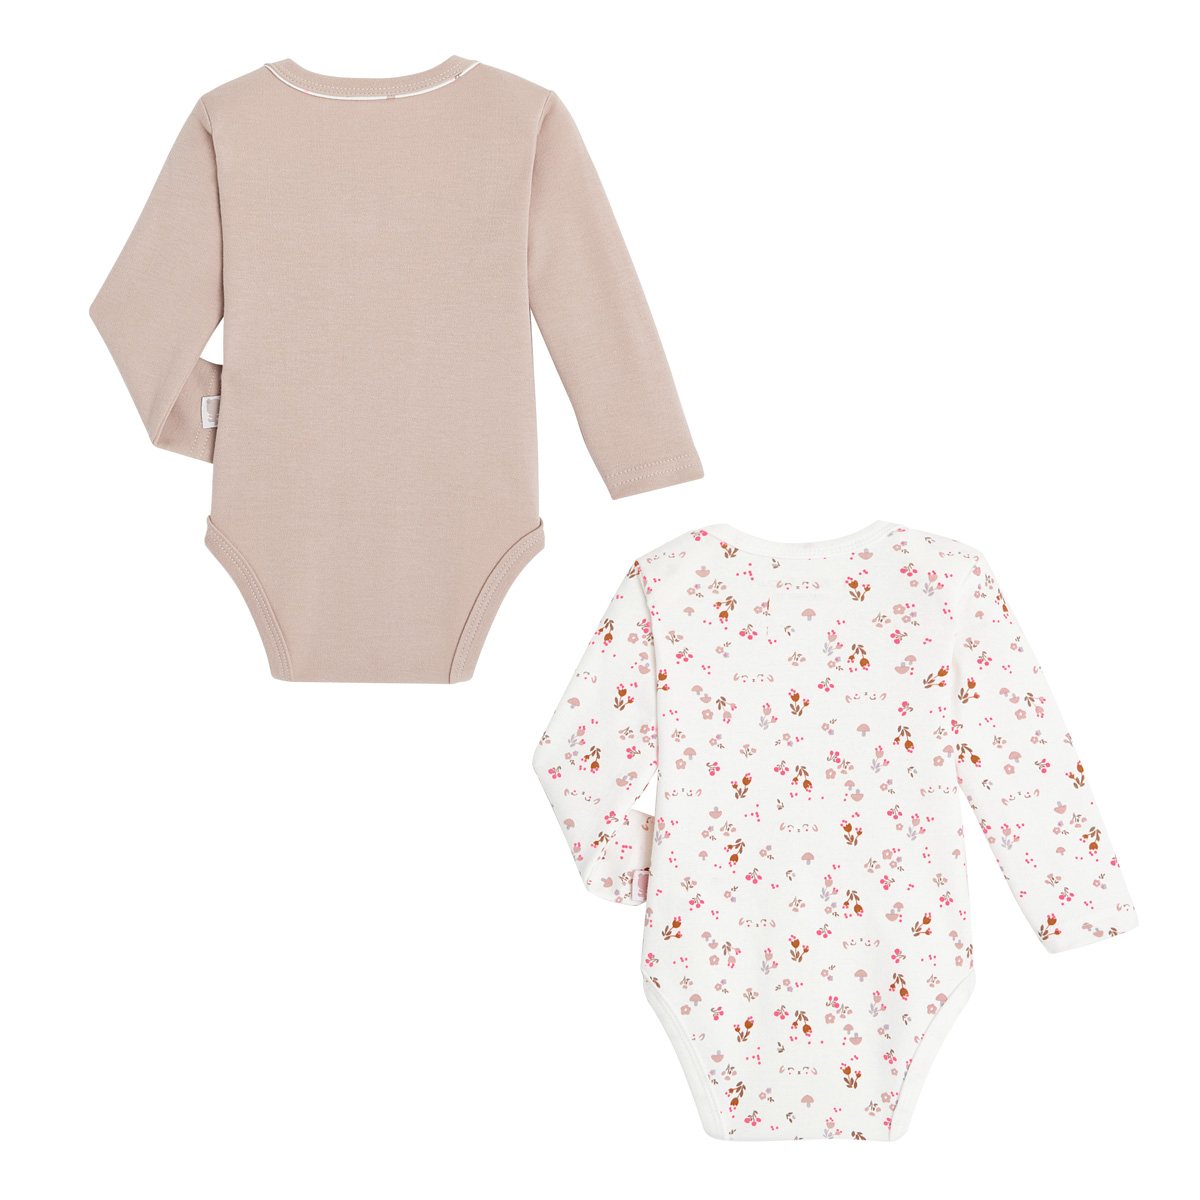 Lot de 2 bodies bébé fille manches longues Lovely Baby dos